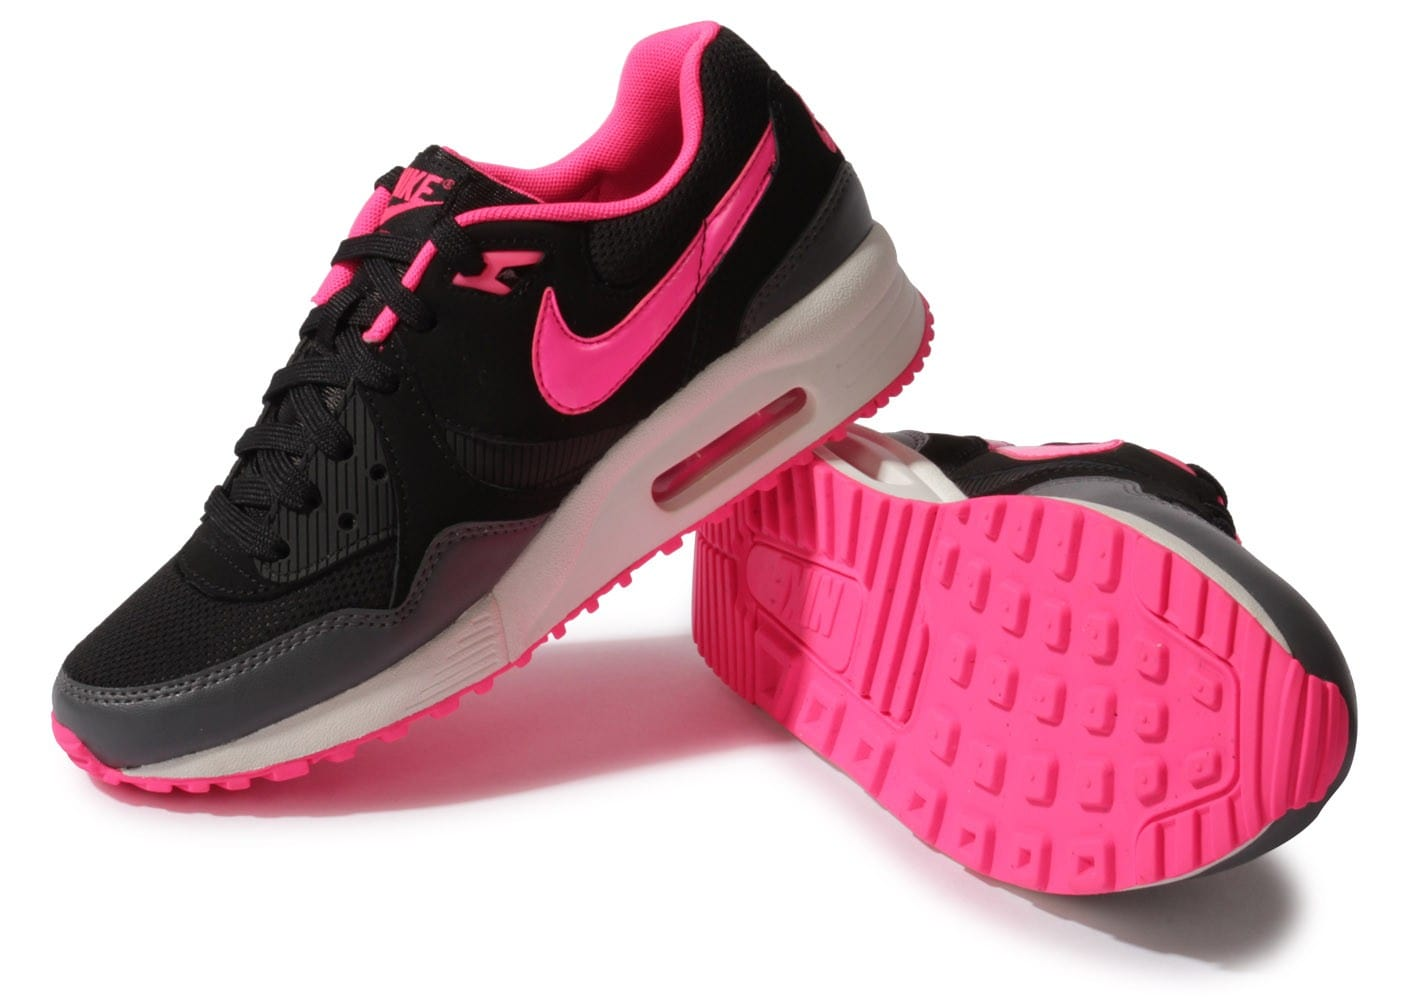 nike air max light noire et rose chaussures chaussures